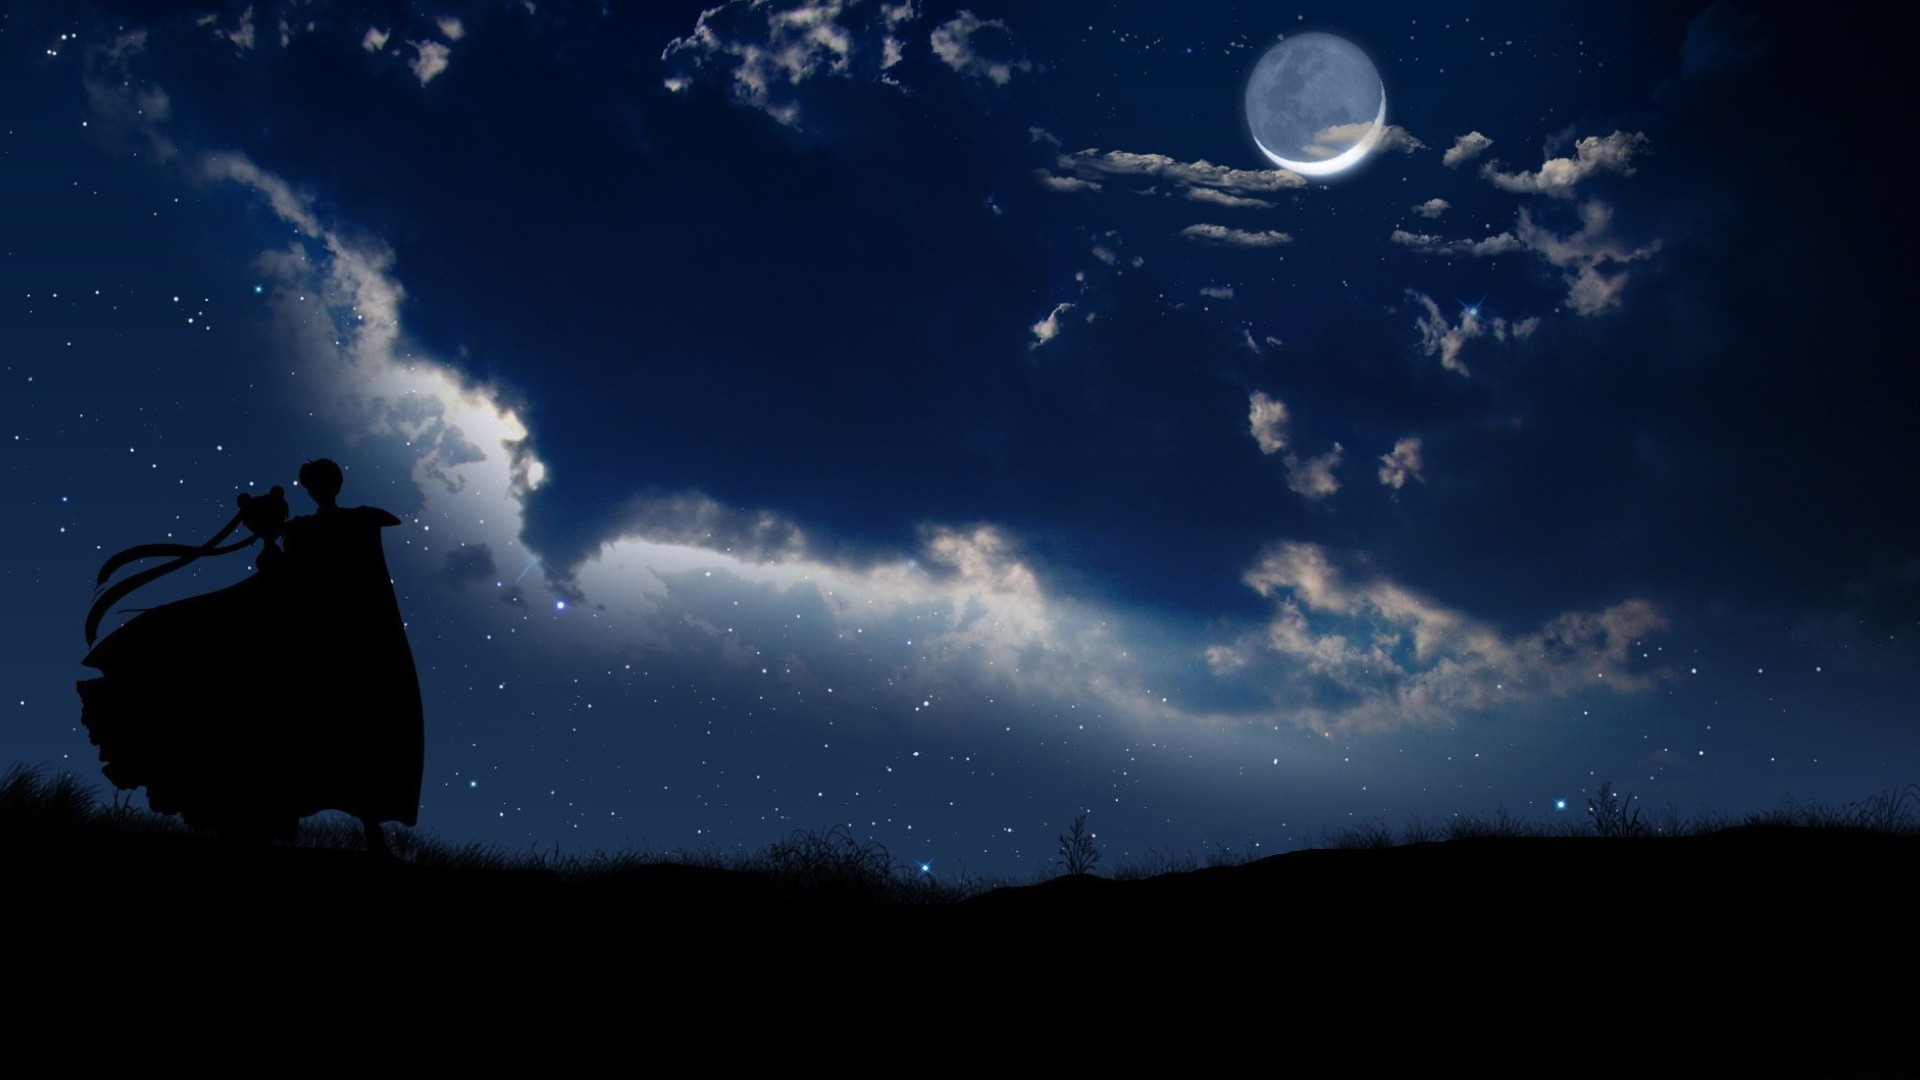 Related Wallpapers Anime Background Moon